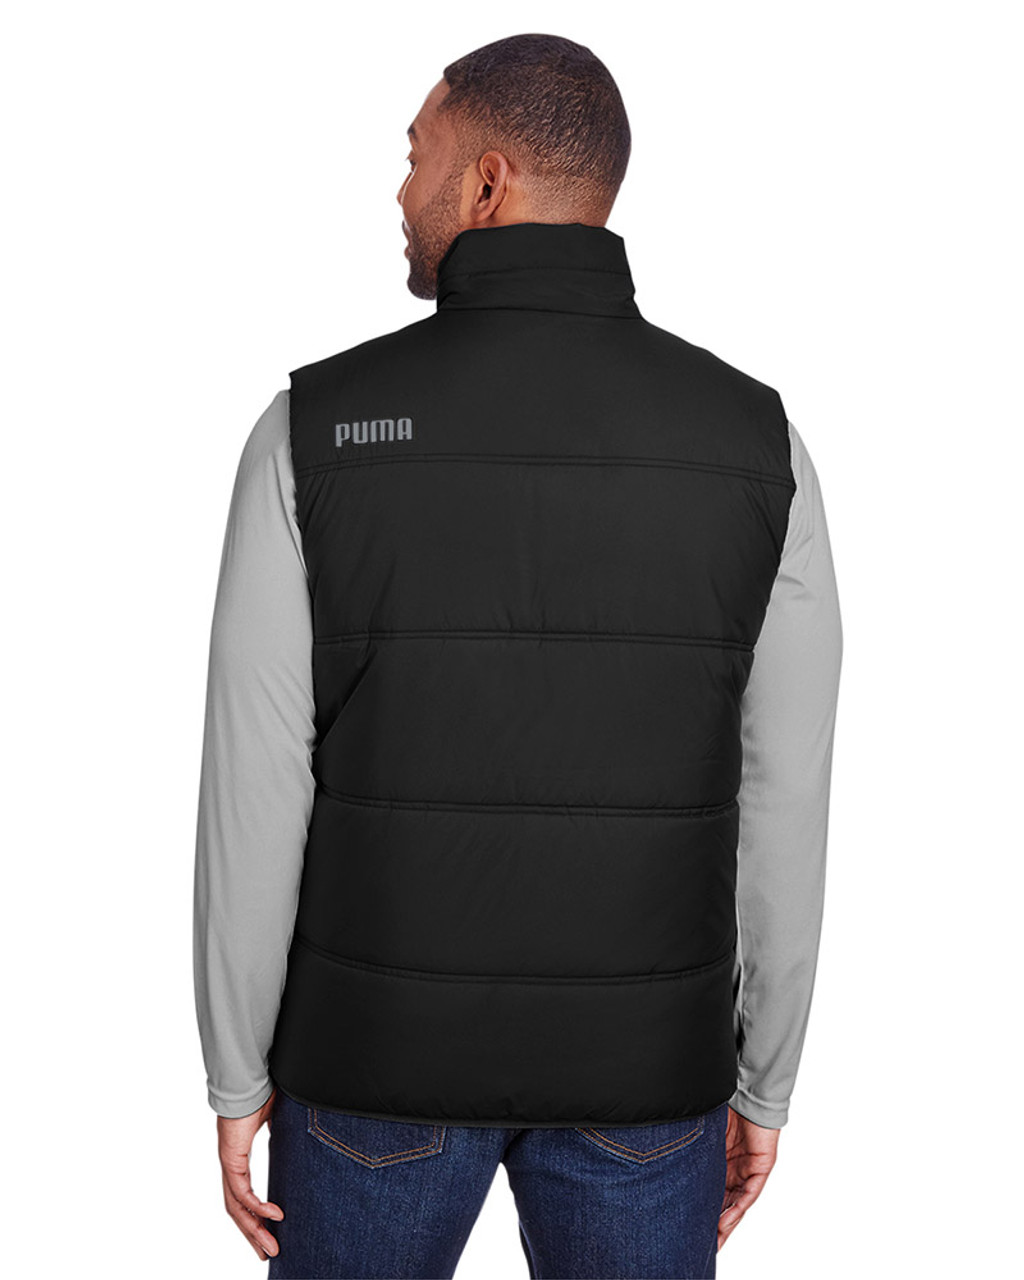 Puma Black/Quiet Shade - back, 582007 Puma Sport Essential Adult Padded Vest | BlankClothing.ca